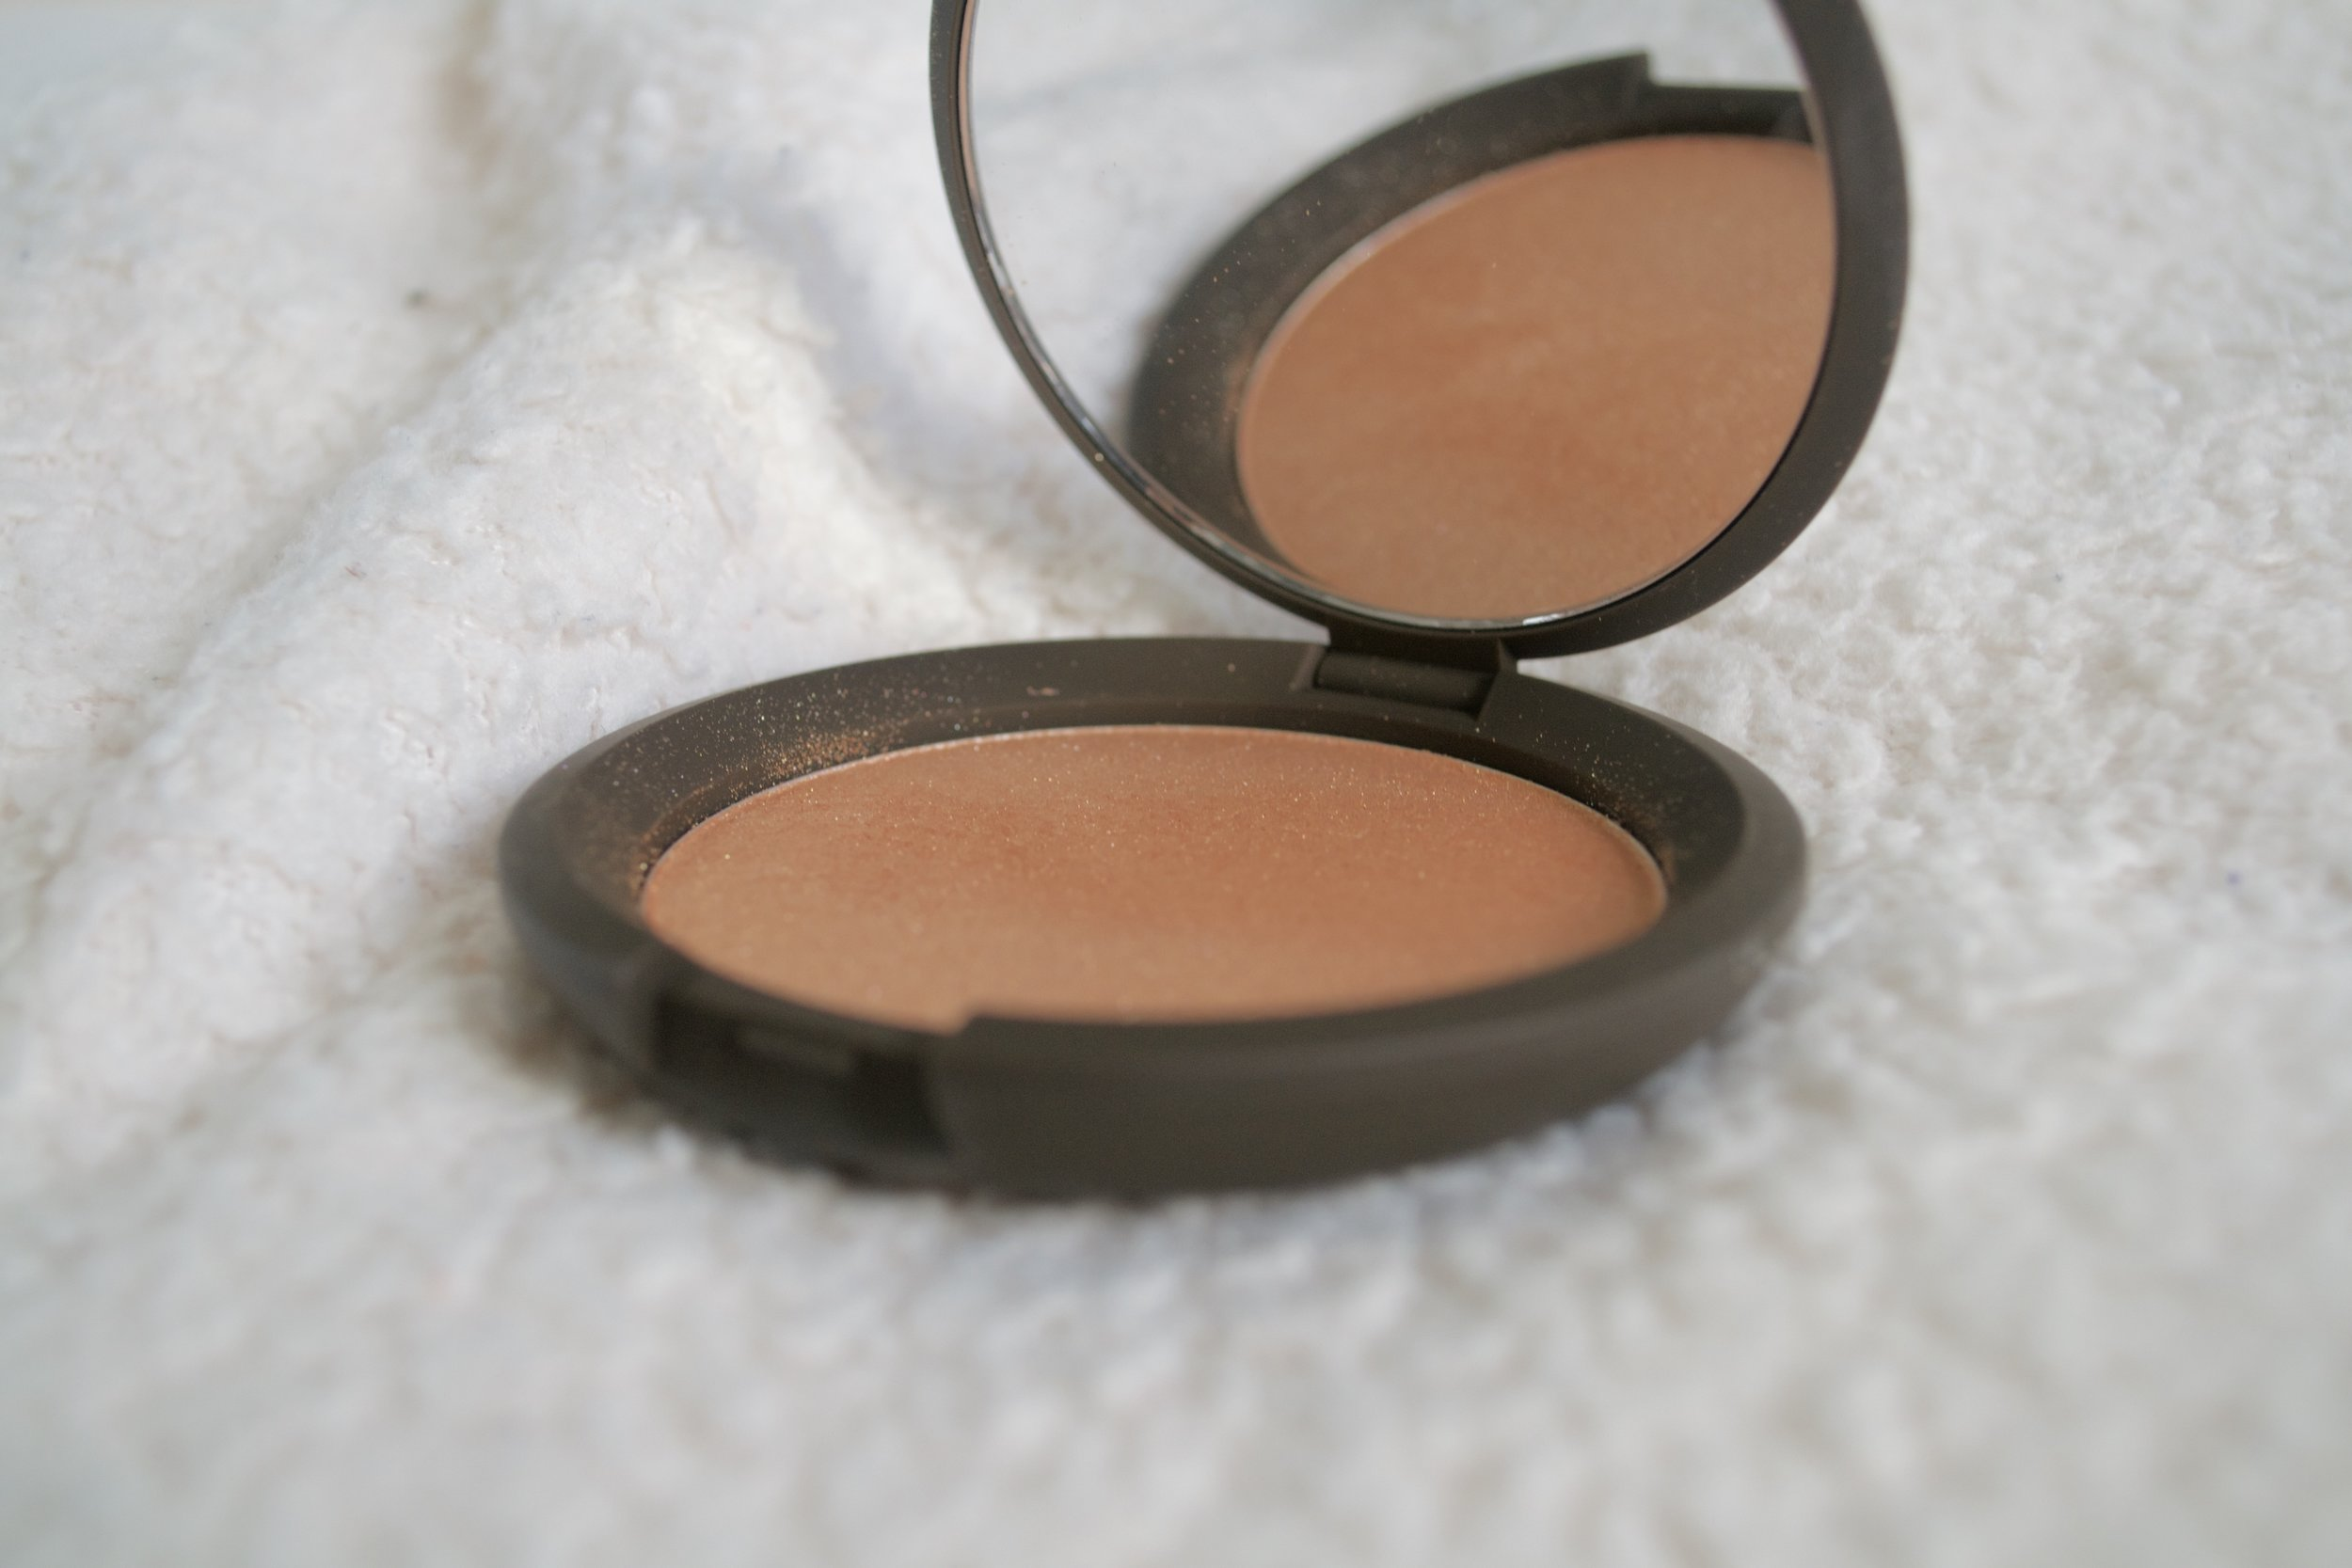 becca jaclyn hill highlighter